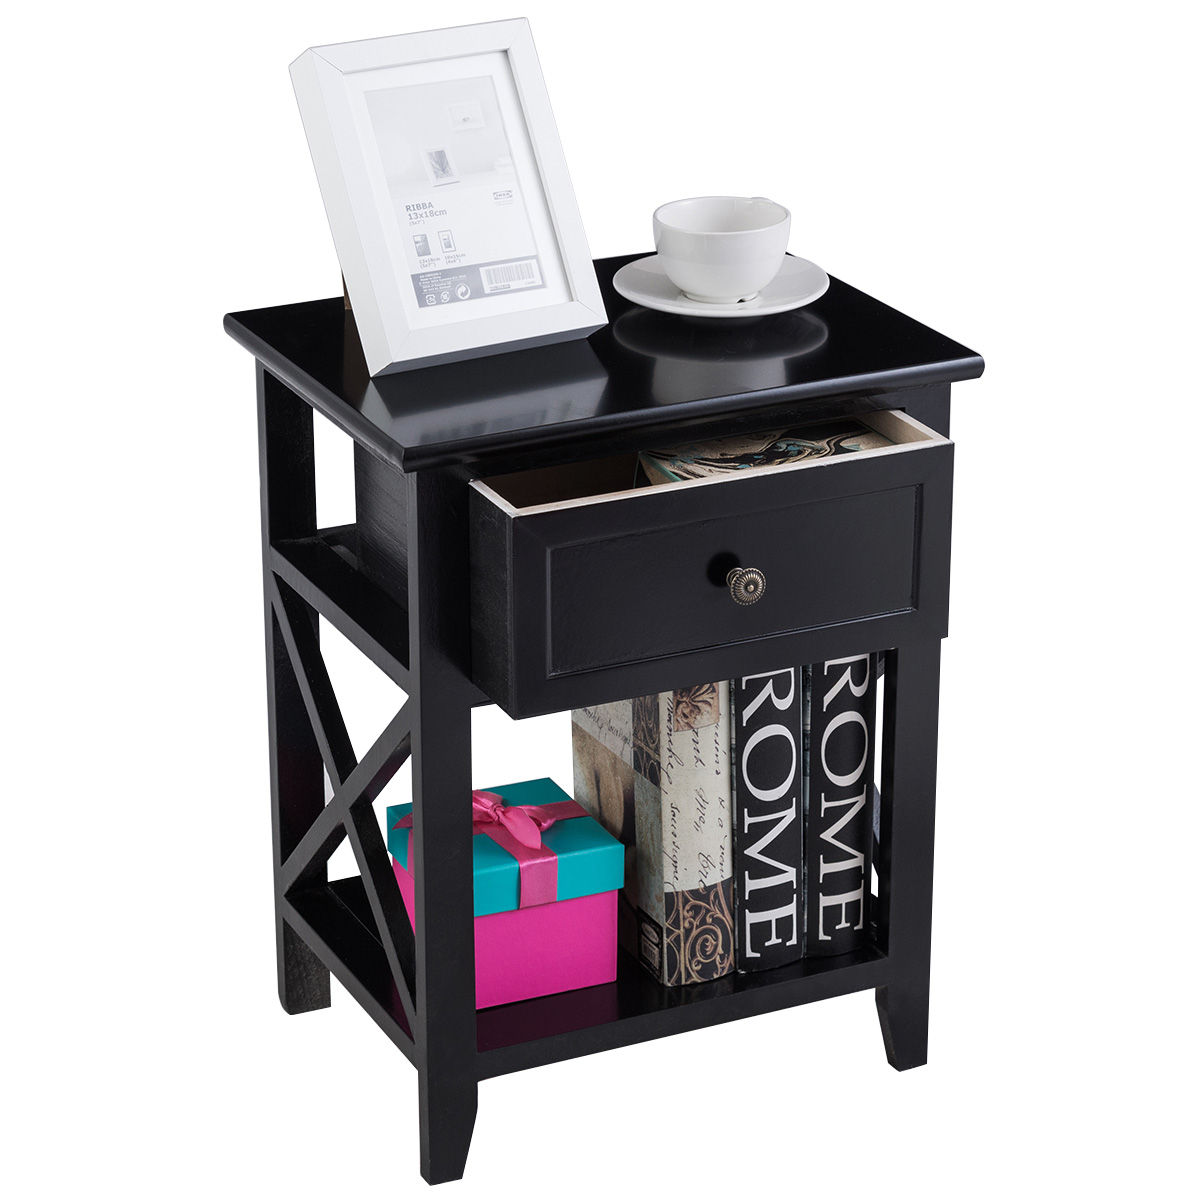 Topbuy End Table Nightstand W/Drawer & Shelf Bedroom